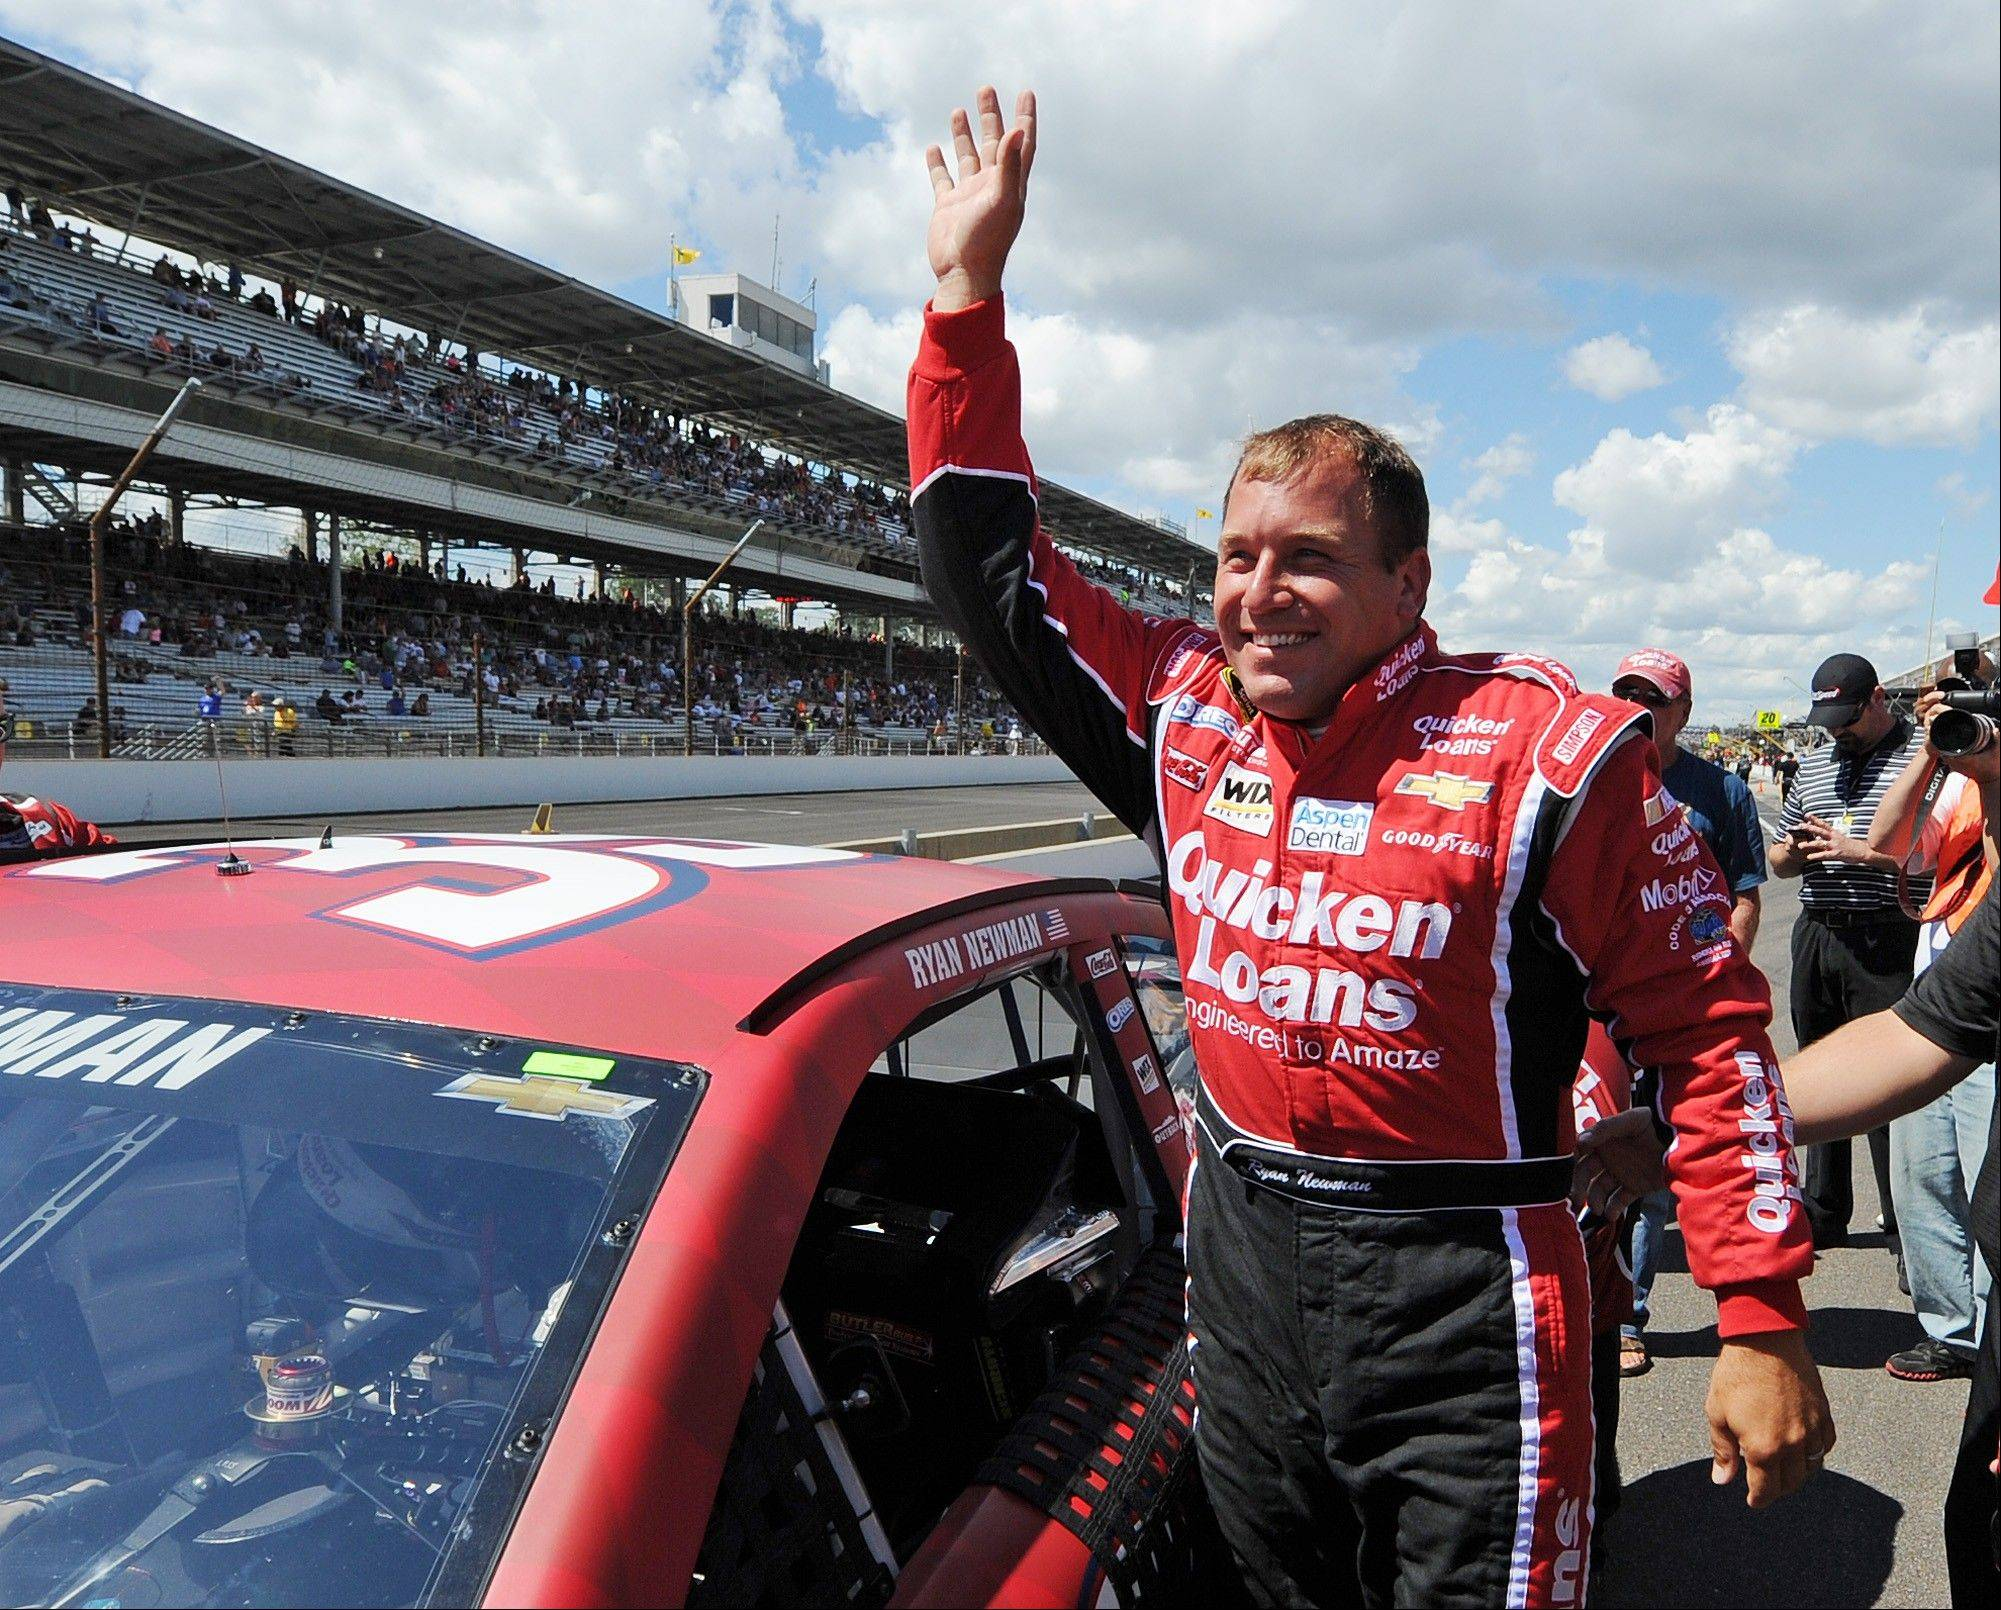 Sprint Cup Series driver Ryan Newman waves to the fans after qualifying for the pole position for the Brickyard 400 auto race at the Indianapolis Motor Speedway in Indianapolis, Saturday,July 27, 2013. Newman qualified with a speed of 187.531 mph.